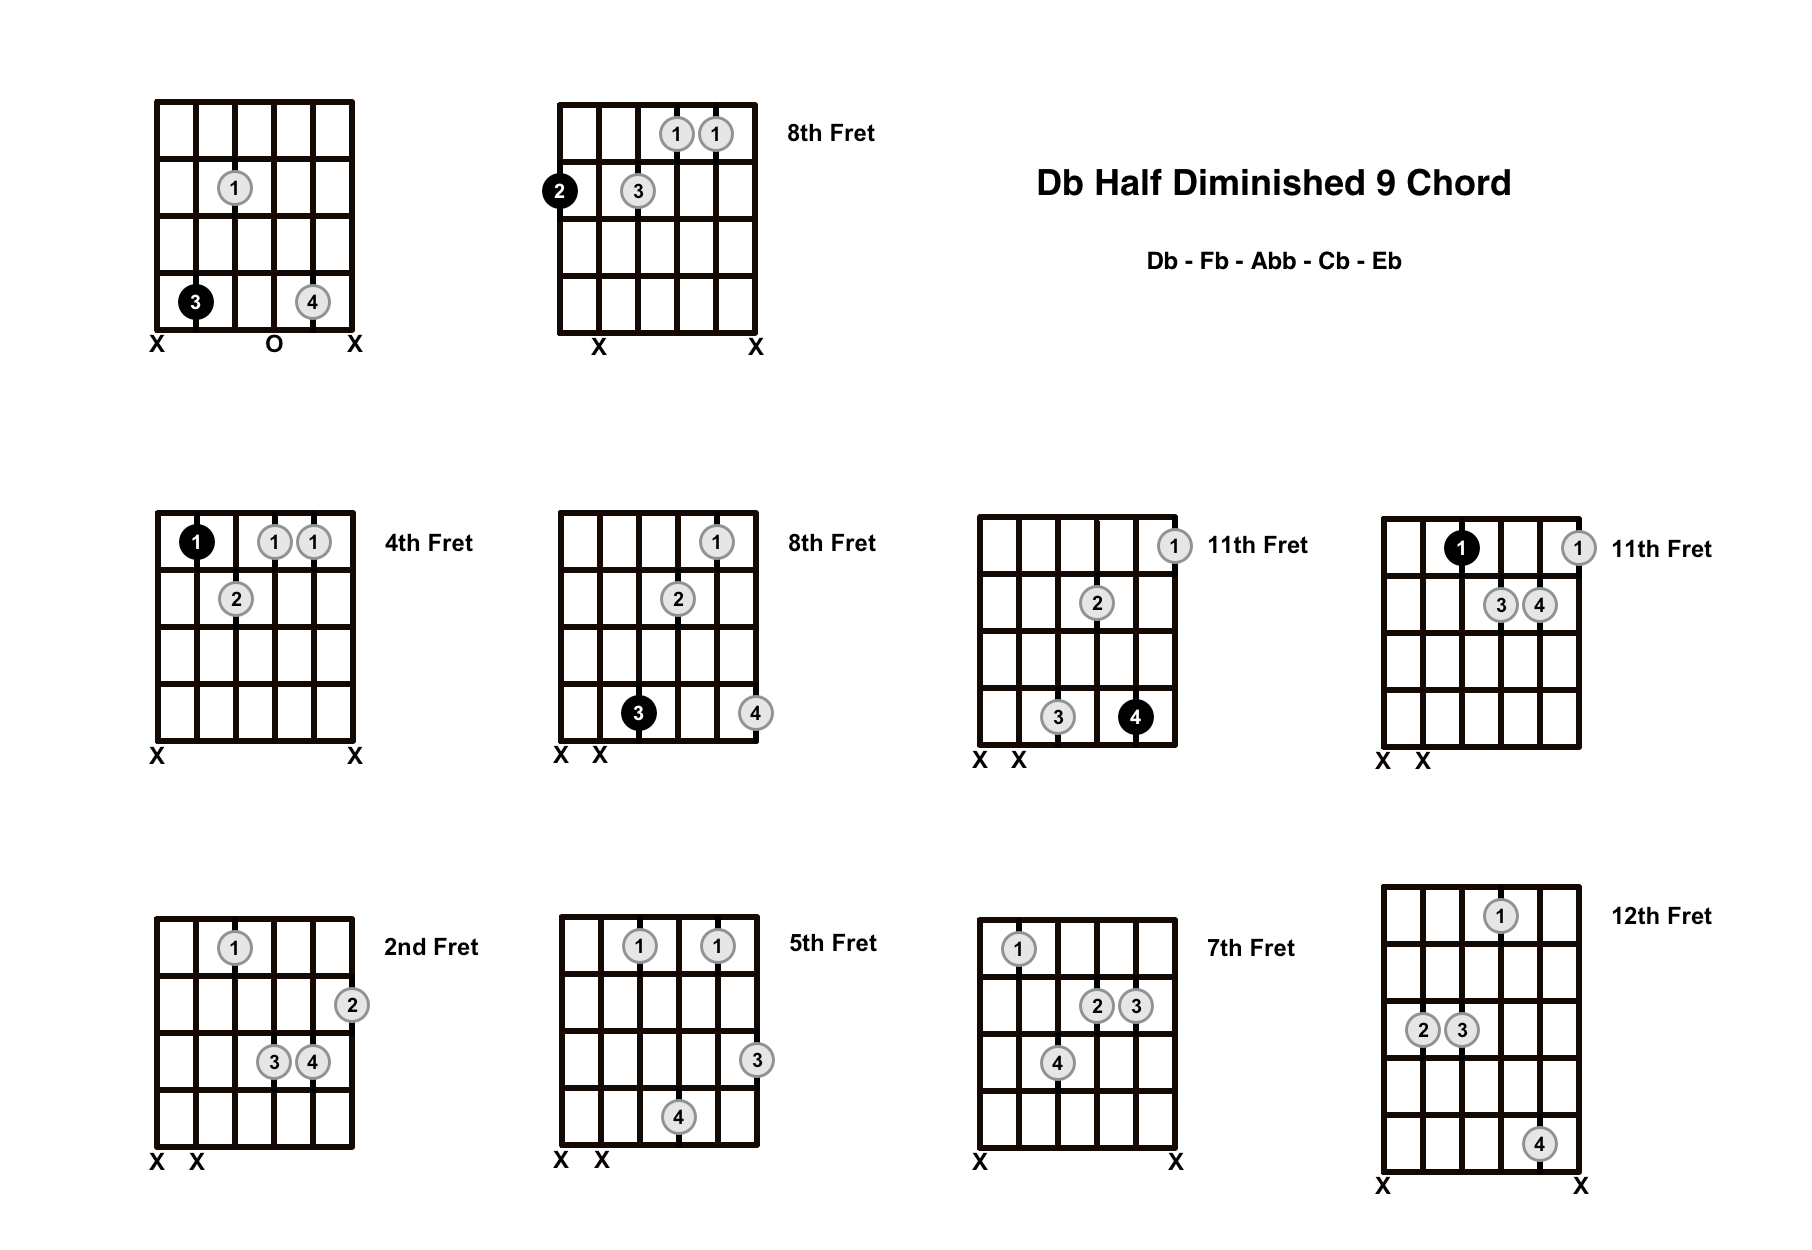 Dbm9b5 Chord On The Guitar (D Flat Half Diminished 9) – Diagrams, Finger Positions and Theory